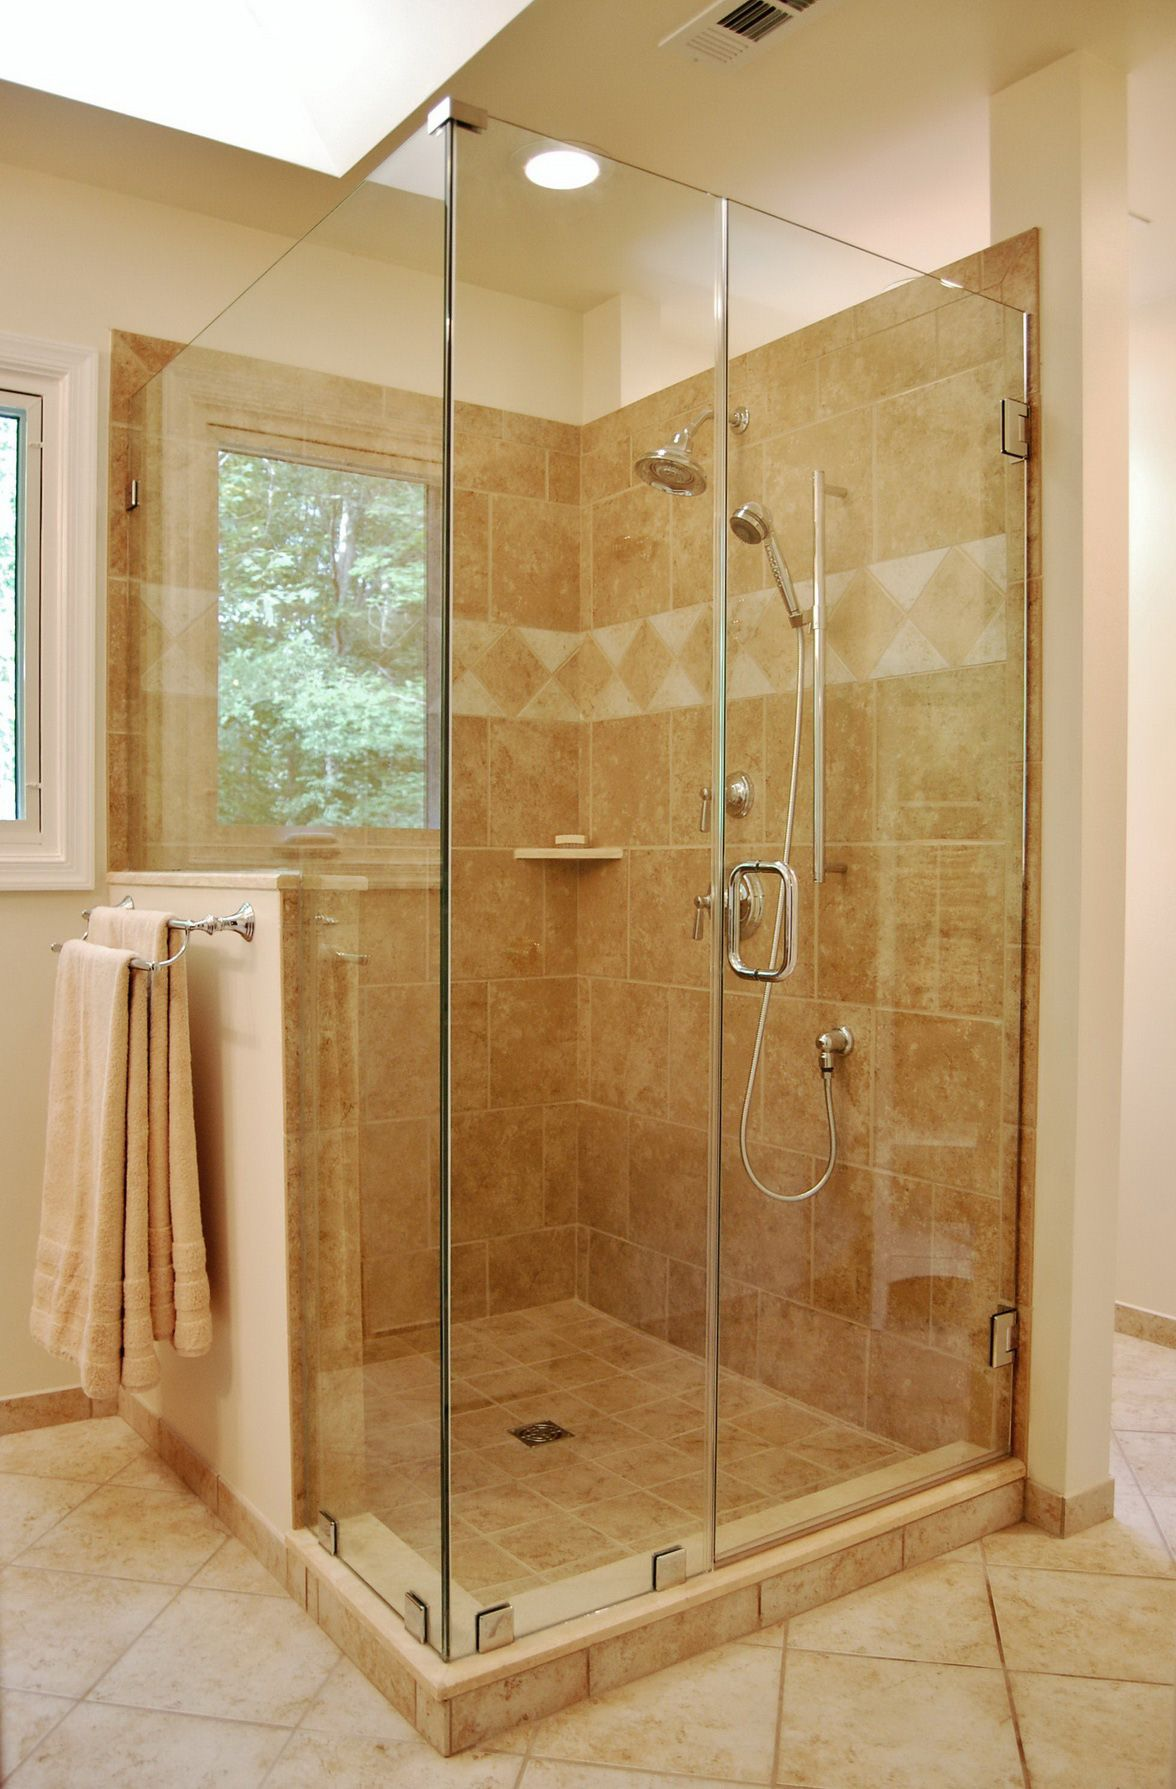 chic glass shower stall kits plus silver handle and tile wall for ...